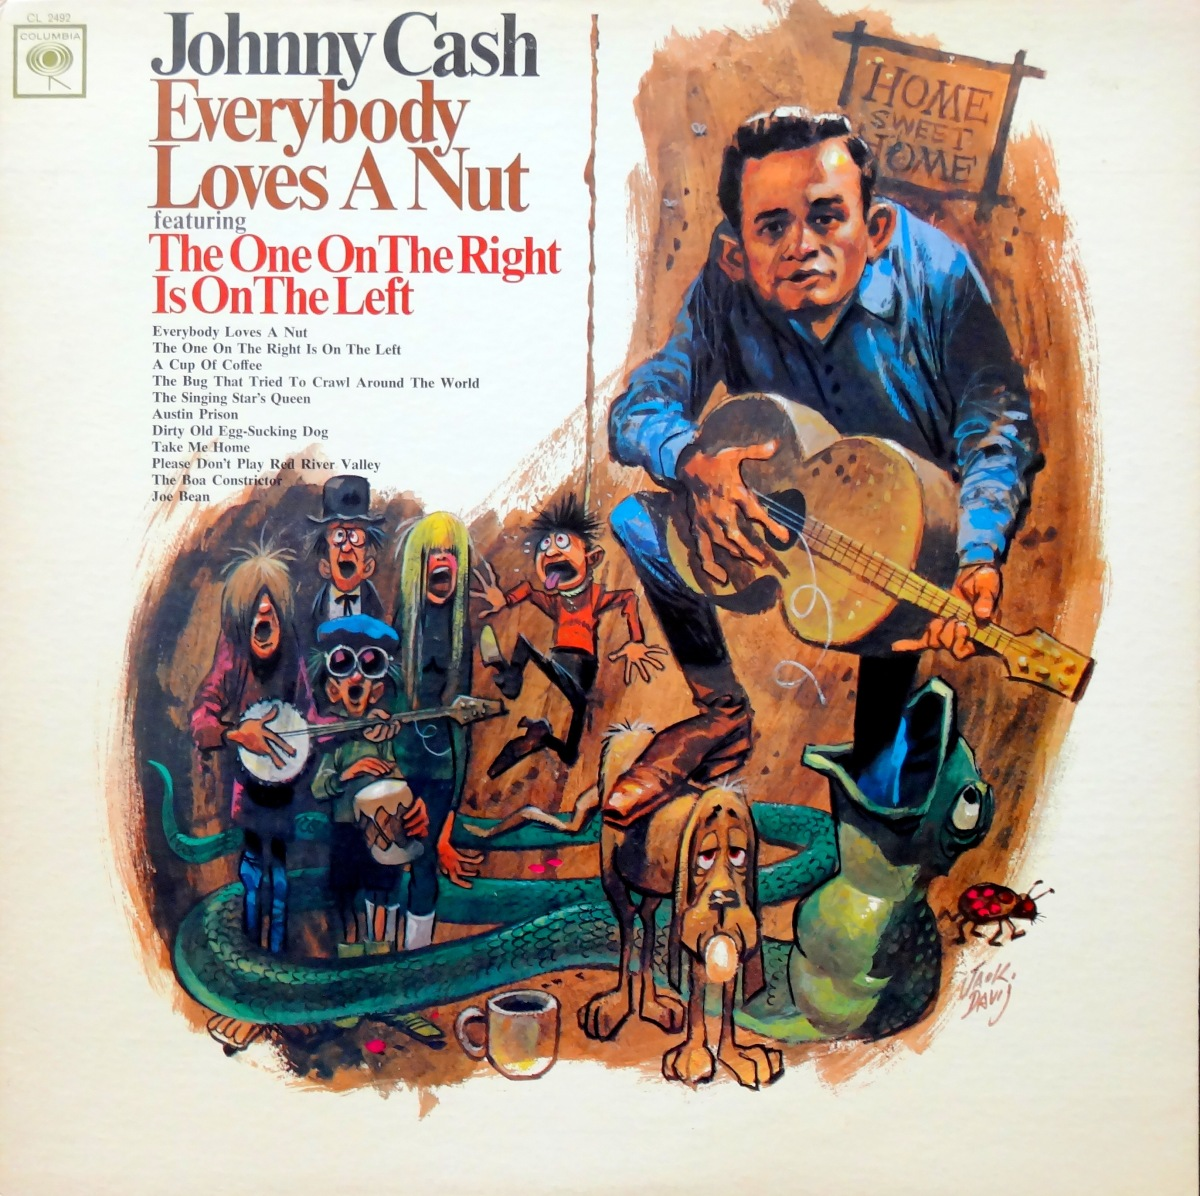 From The Stacks: Johnny Cash, 'Everybody Loves A Nut'